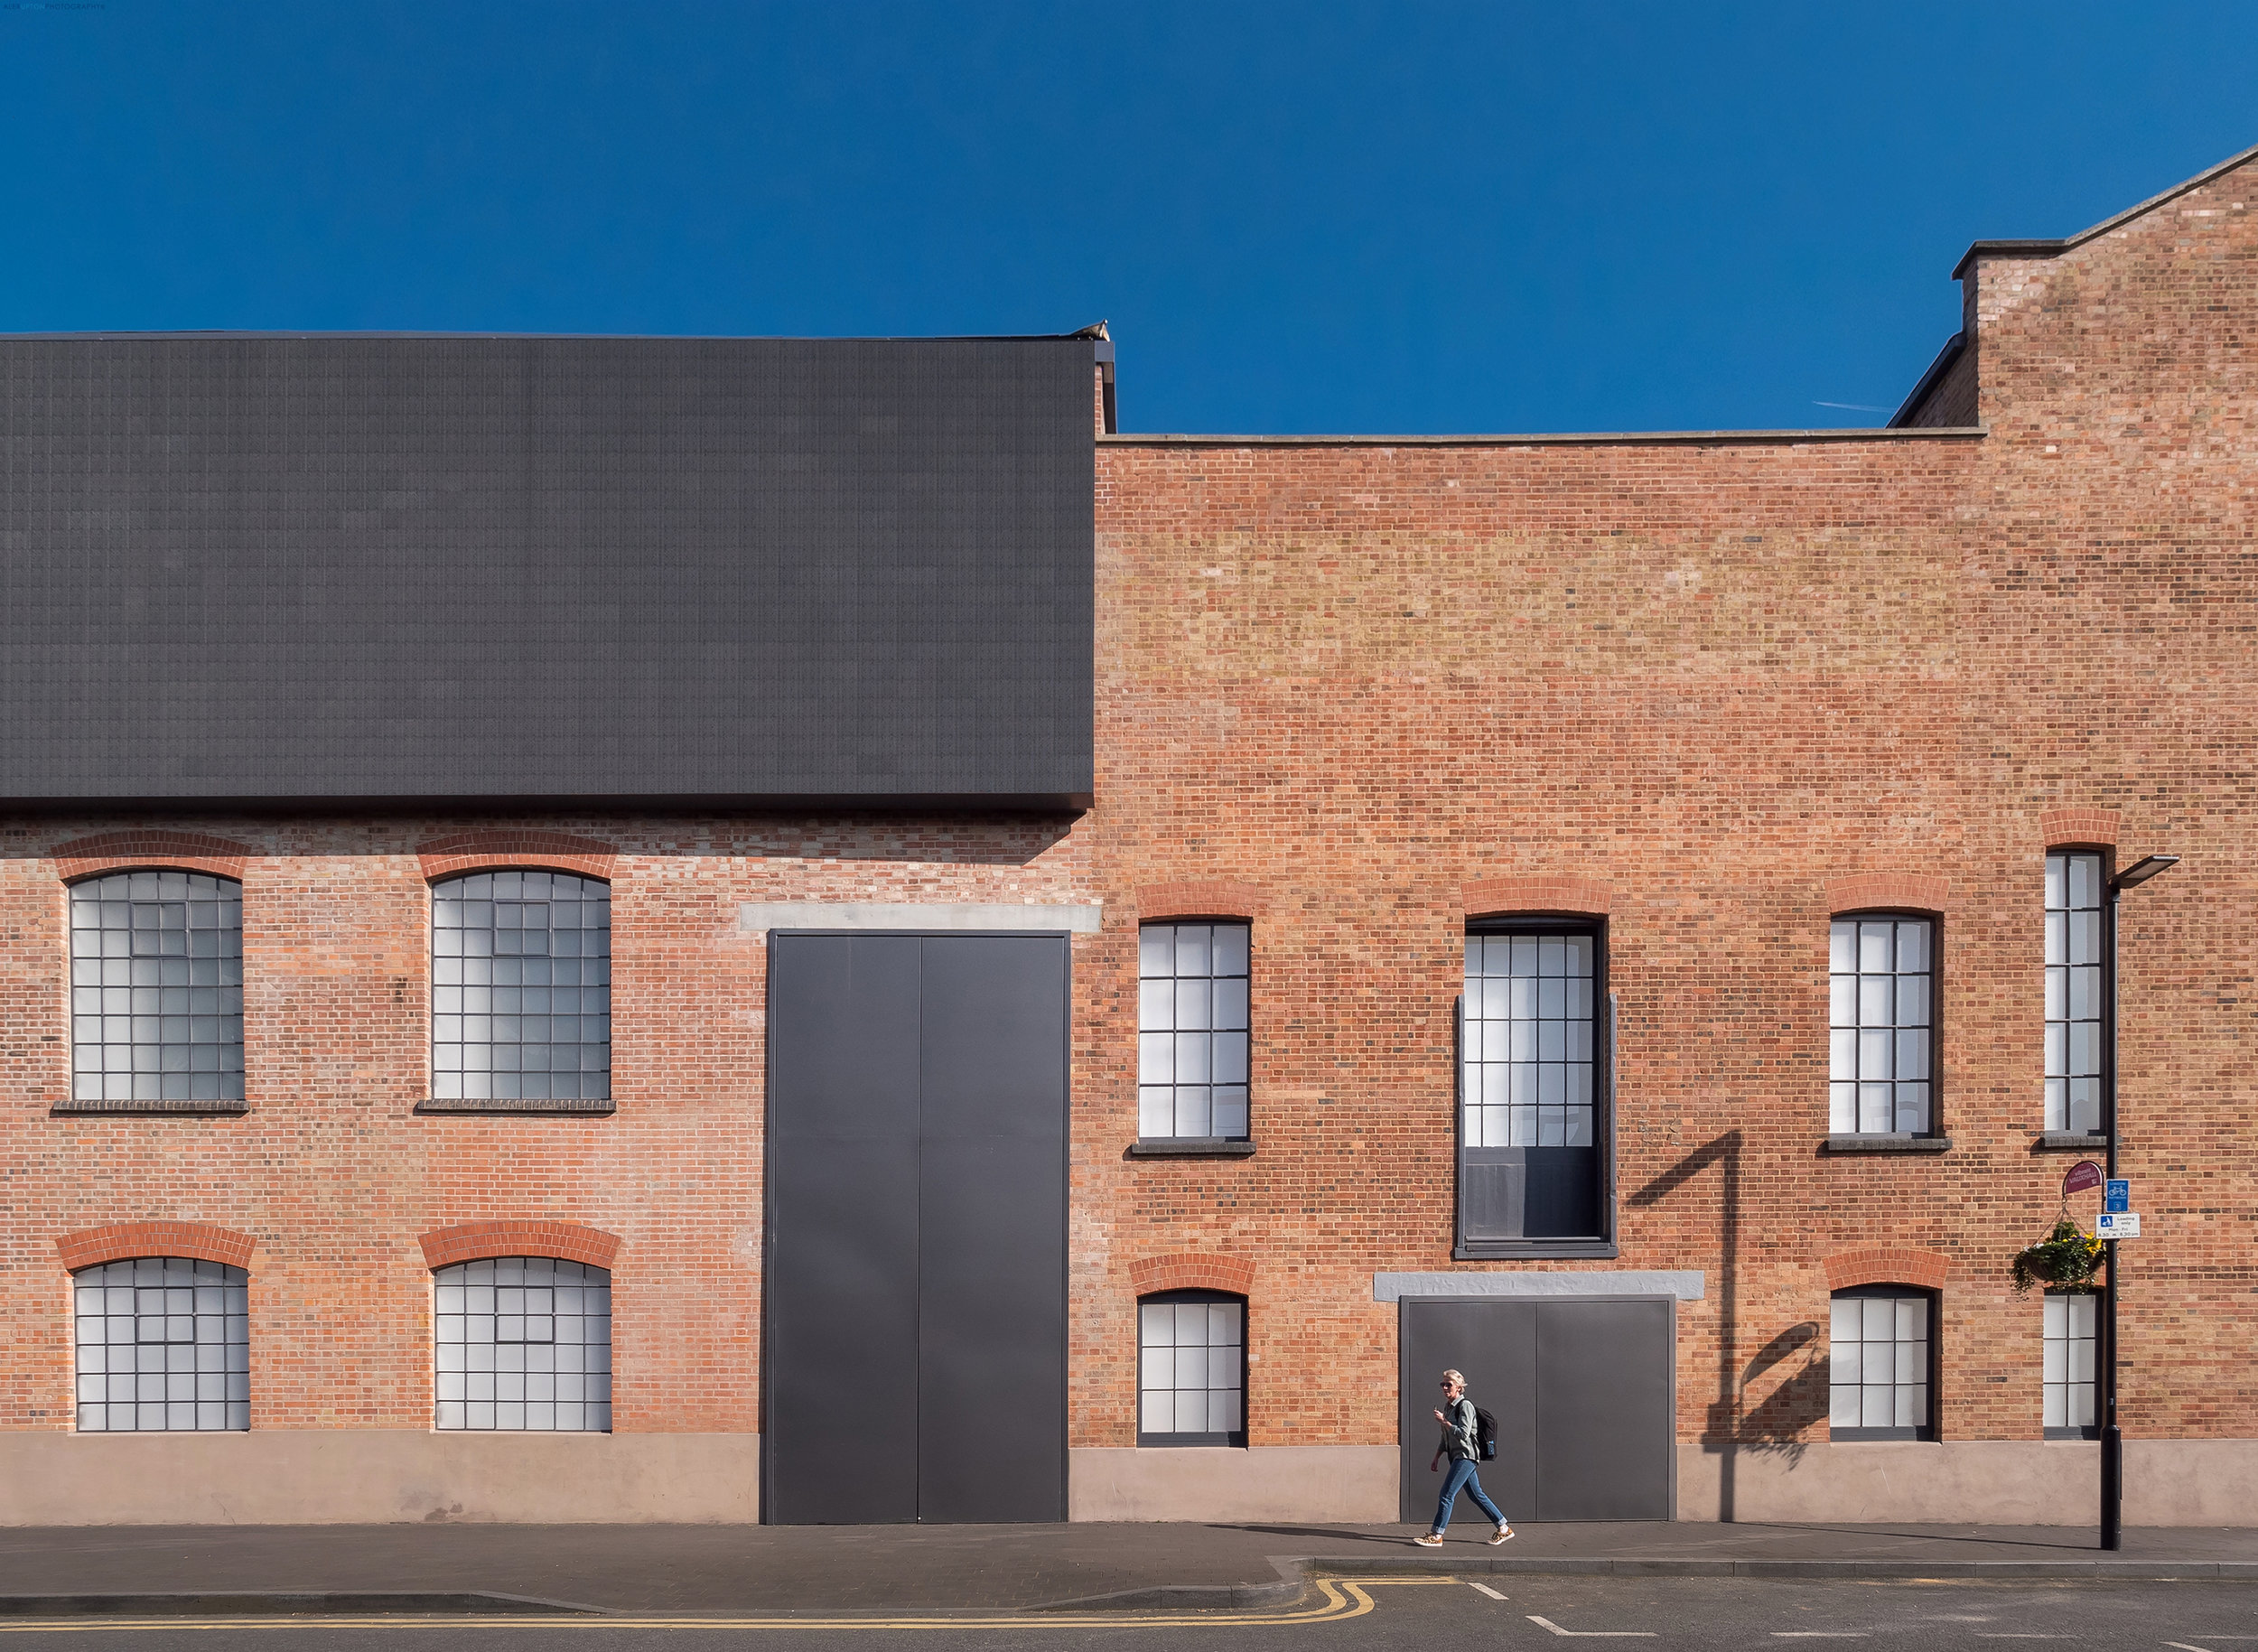 Contrasting the old and new brickwork along Newport Street Gallery's facade.